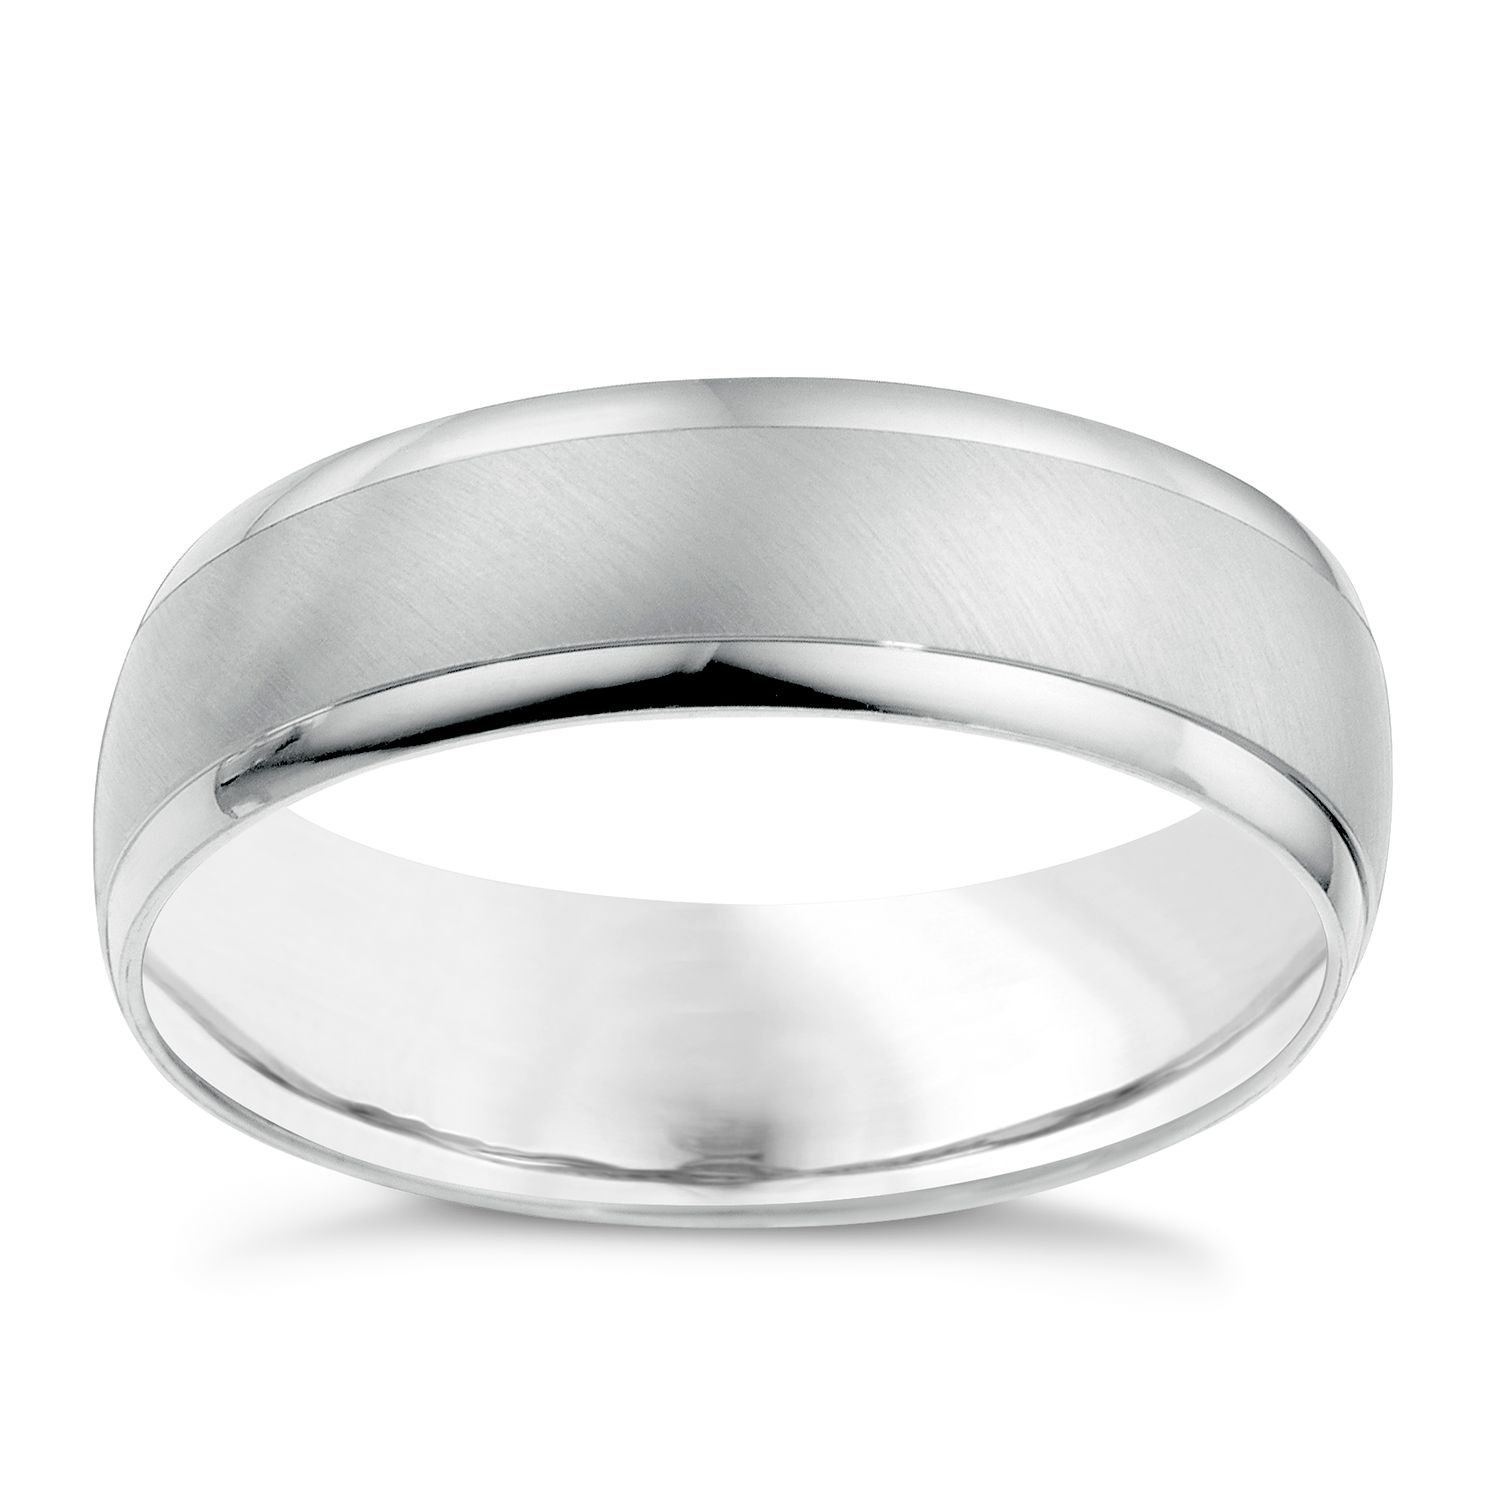 18ct White Gold 6mm Matt & Polish Ring - Product number 6628338